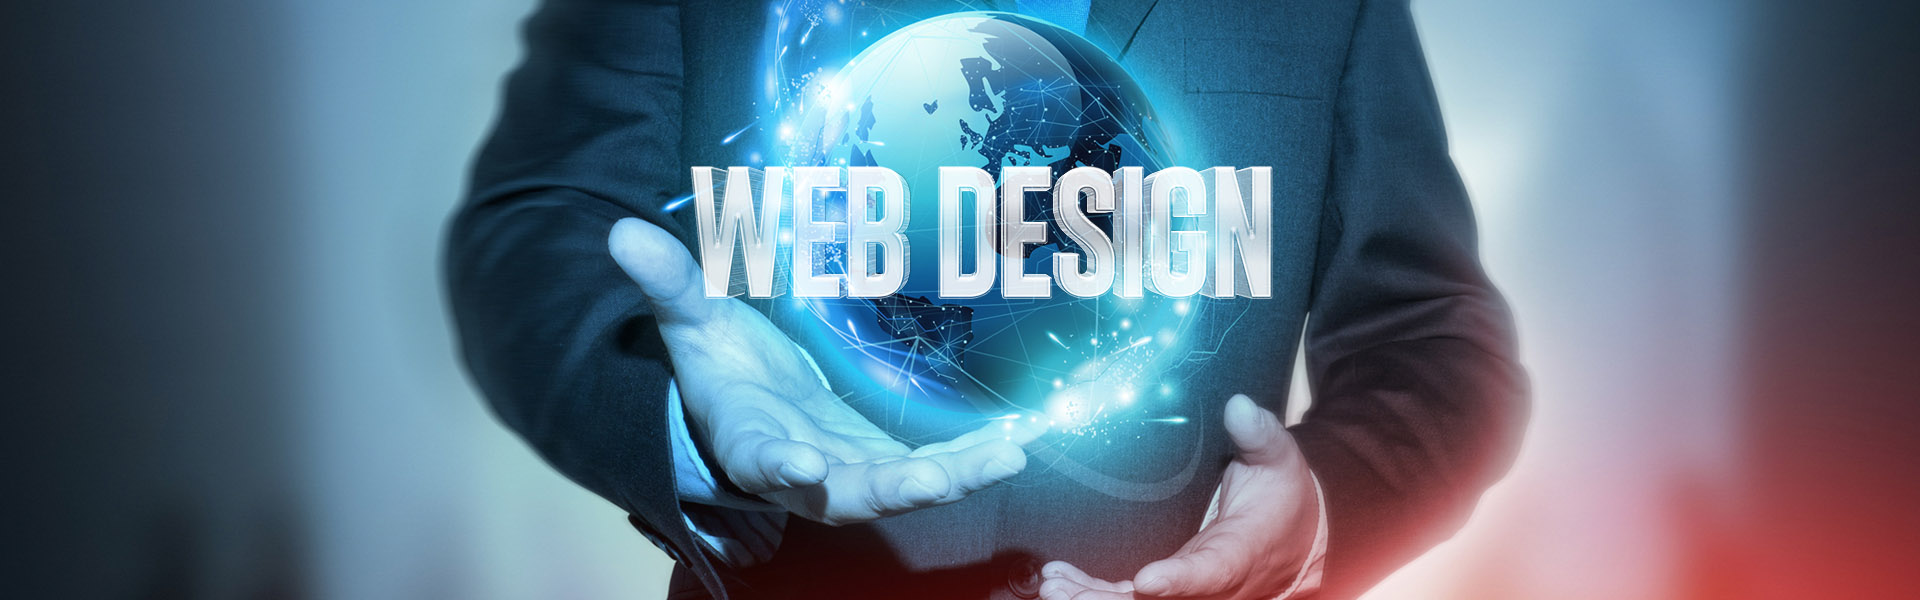 web design company india